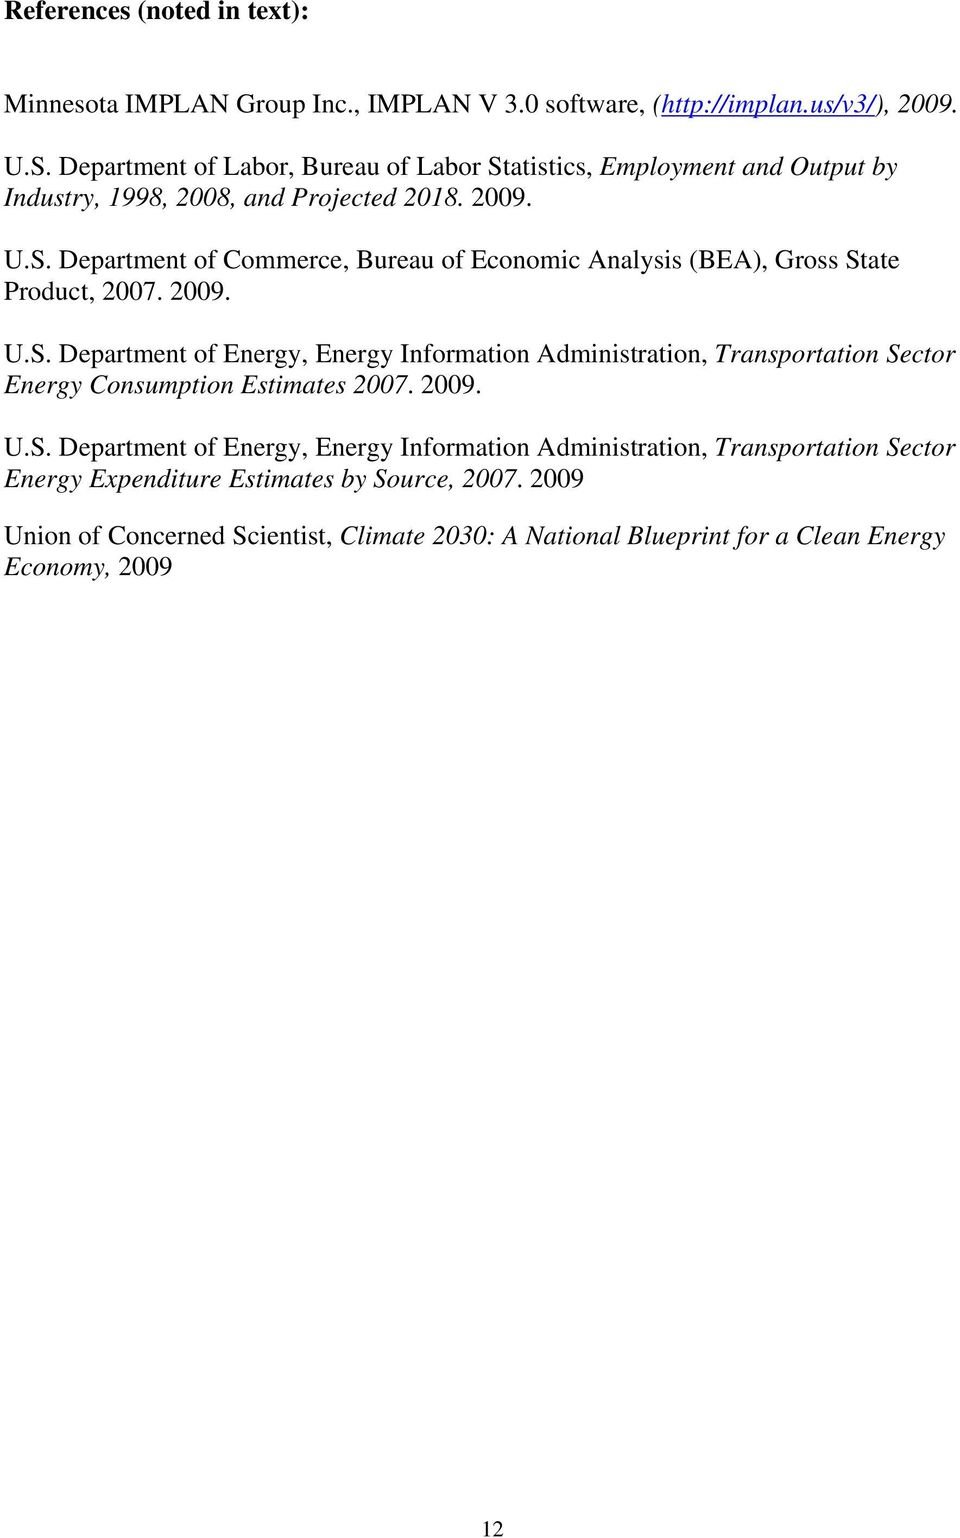 2009. U.S. Department of Energy, Energy Information Administration, Transportation Sector Energy Consumption Estimates 2007. 2009. U.S. Department of Energy, Energy Information Administration, Transportation Sector Energy Expenditure Estimates by Source, 2007.